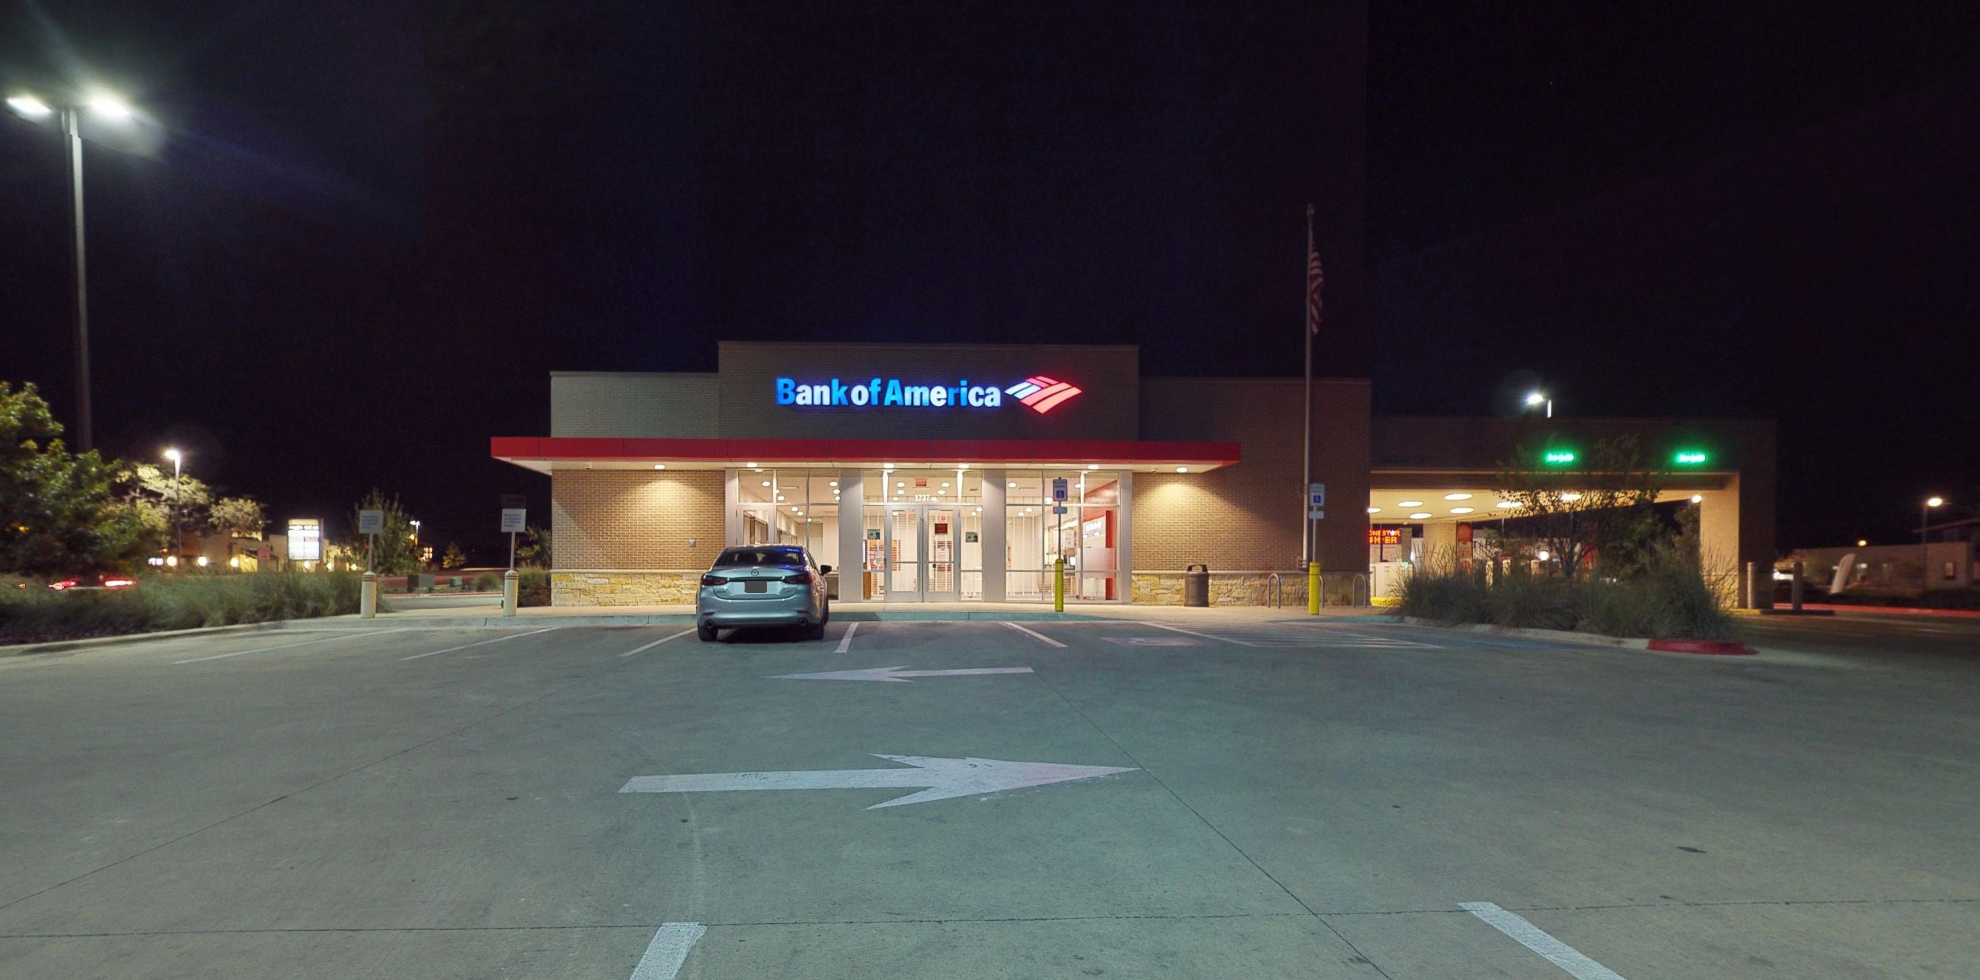 Bank of America financial center with drive-thru ATM | 1737 W State Highway 46, New Braunfels, TX 78132